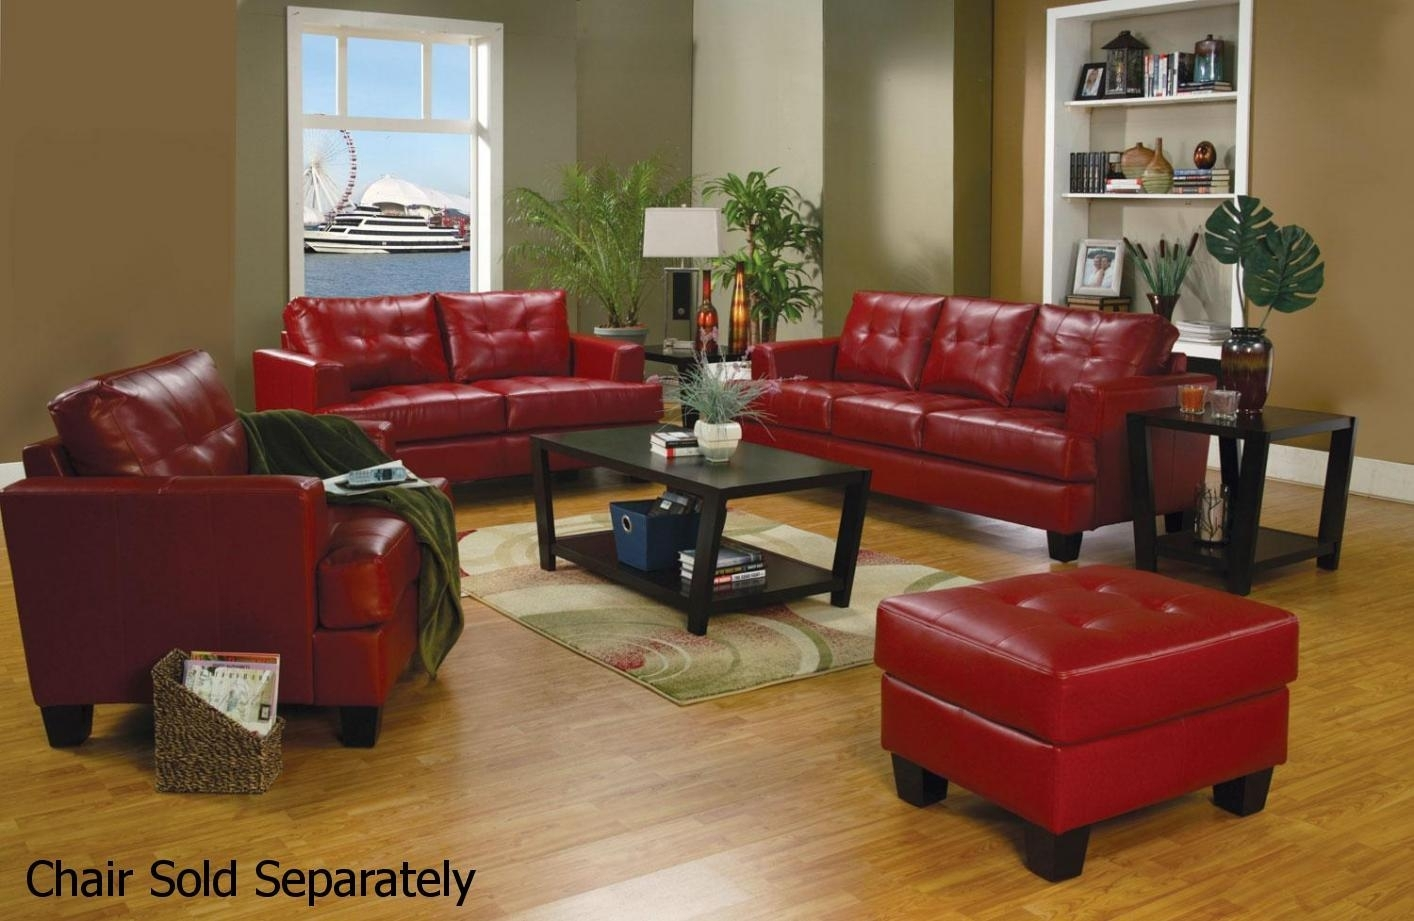 Astonishing Samuel Red Leather Sofa And Loveseat Set Stealasofa With Regard To Red Leather Couches And Loveseats (Image 1 of 10)